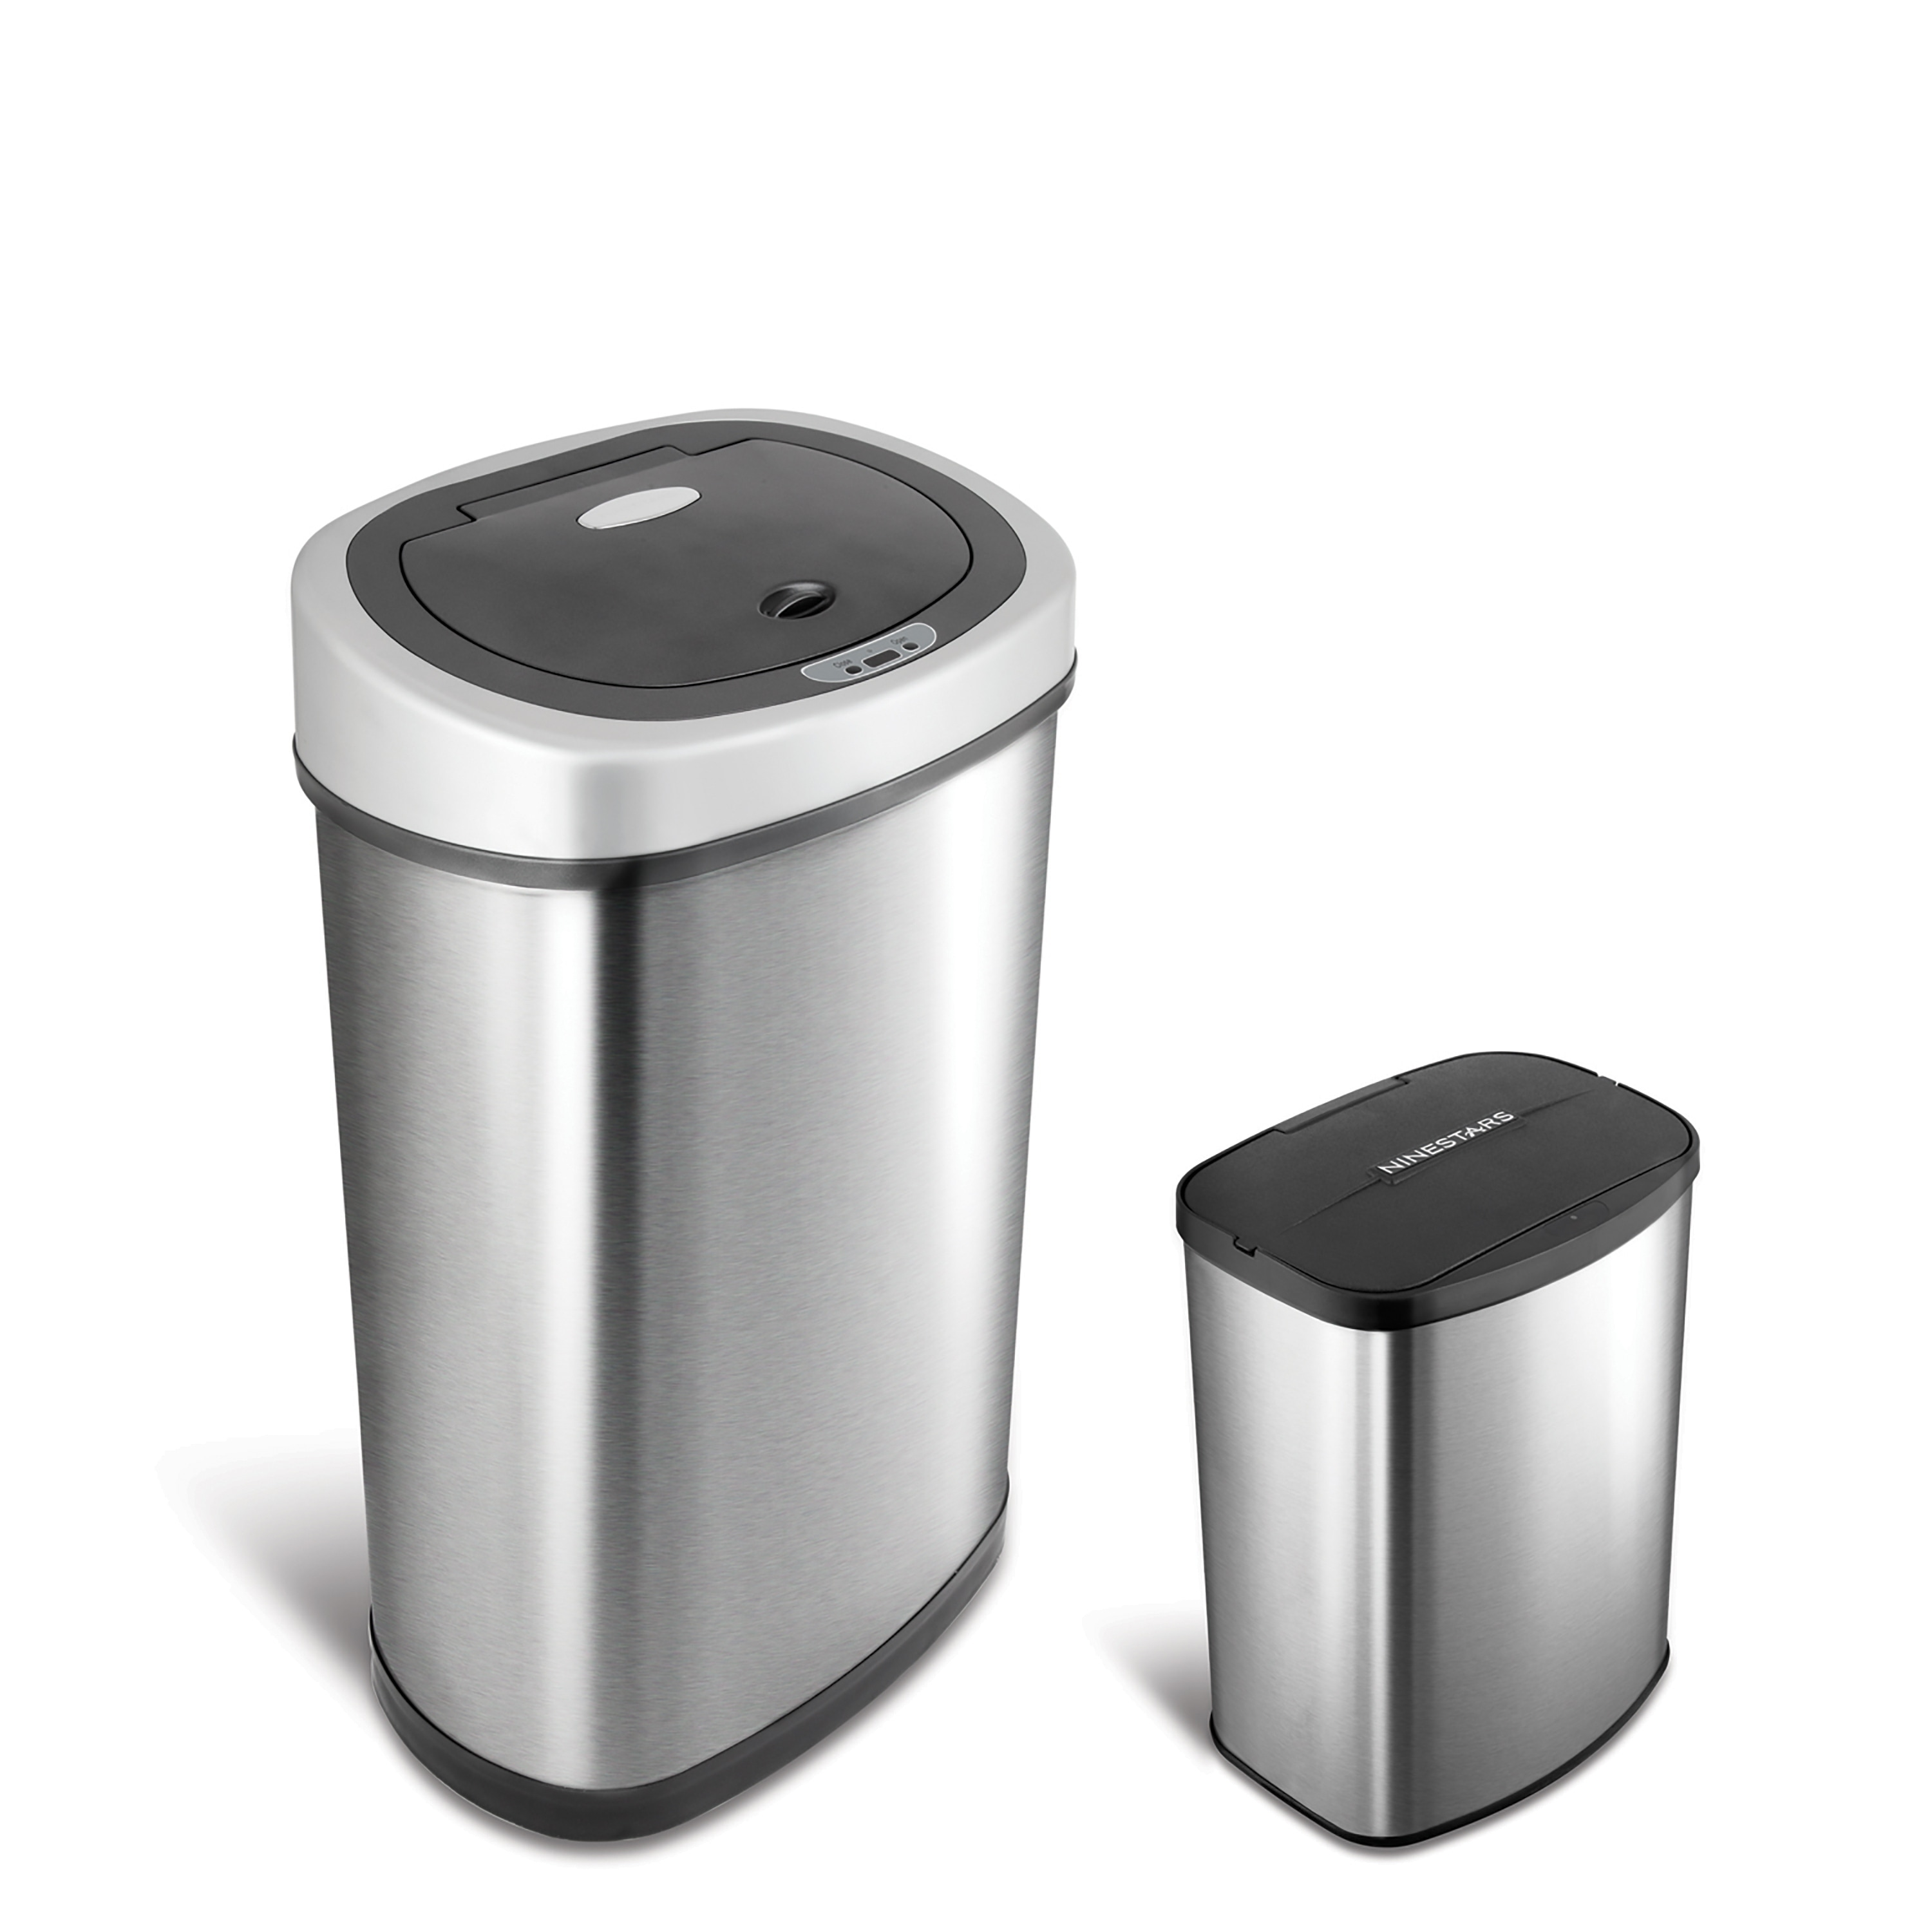 Small White Trash Can With Lid Buy Kitchen Trash Cans Online At Overstock Our Best Kitchen